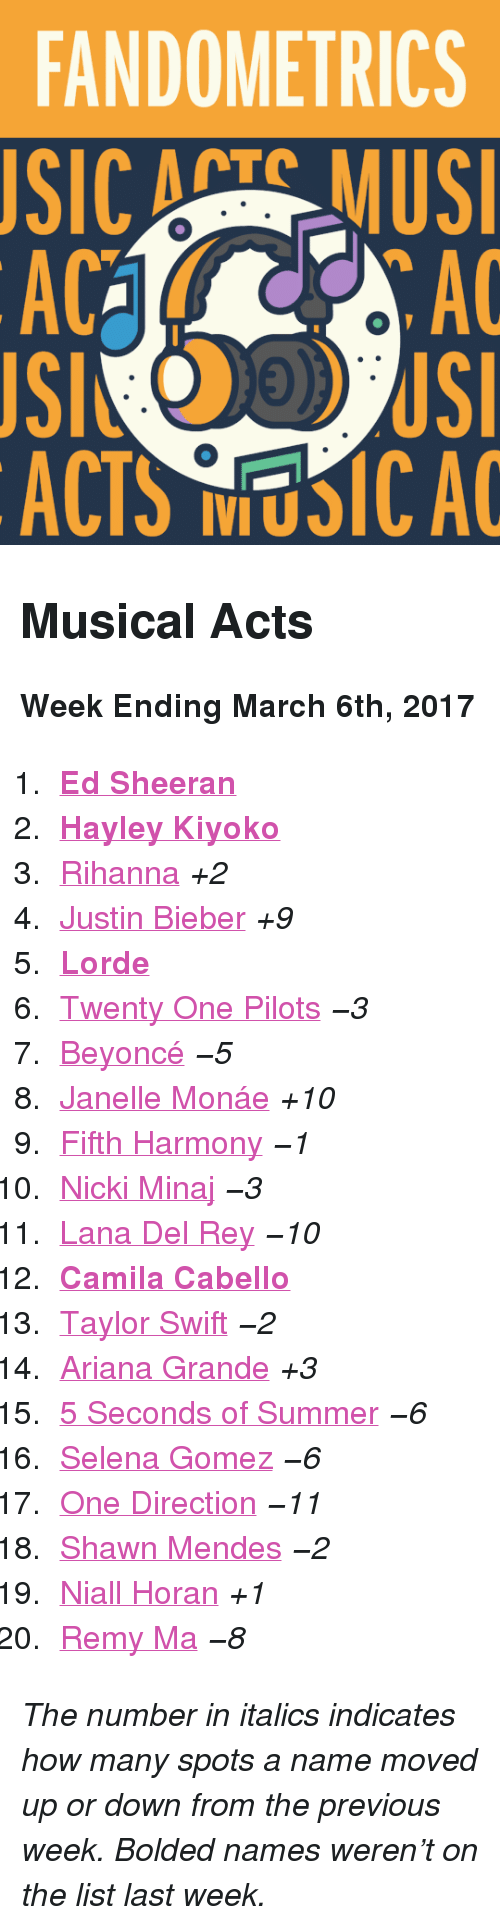 """Ariana Grande, Beyonce, and Justin Bieber: FANDOMETRICS  SIC ATS MUS  AC  AC  ACTS NUSICA <h2>Musical Acts</h2><p><b>Week Ending March 6th, 2017</b></p><ol><li><b><a href=""""http://www.tumblr.com/search/ed%20sheeran"""">Ed Sheeran</a></b></li>  <li><a href=""""http://www.tumblr.com/search/hayley%20kiyoko""""><b>Hayley Kiyoko</b></a></li>  <li><a href=""""http://www.tumblr.com/search/rihanna"""">Rihanna</a><i>+2</i></li>  <li><a href=""""http://www.tumblr.com/search/justin%20bieber"""">Justin Bieber</a><i>+9</i></li>  <li><b><a href=""""http://www.tumblr.com/search/lorde"""">Lorde</a></b></li>  <li><a href=""""http://www.tumblr.com/search/twenty%20one%20pilots"""">Twenty One Pilots</a><i><i>−3</i></i></li>  <li><a href=""""http://www.tumblr.com/search/beyonce"""">Beyoncé</a><i><i>−5</i></i></li>  <li><a href=""""http://www.tumblr.com/search/janelle%20monae"""">Janelle Monáe</a><i>+10</i></li>  <li><a href=""""http://www.tumblr.com/search/fifth%20harmony"""">Fifth Harmony</a><i><i>−1</i></i></li>  <li><a href=""""http://www.tumblr.com/search/nicki%20minaj"""">Nicki Minaj</a><i><i>−3</i></i></li>  <li><a href=""""http://www.tumblr.com/search/lana%20del%20rey"""">Lana Del Rey</a><i><i>−10</i></i></li>  <li><b><a href=""""http://www.tumblr.com/search/camila%20cabello"""">Camila Cabello</a></b></li>  <li><a href=""""http://www.tumblr.com/search/taylor%20swift"""">Taylor Swift</a><i><i>−2</i></i></li>  <li><a href=""""http://www.tumblr.com/search/ariana%20grande"""">Ariana Grande</a><i>+3</i></li>  <li><a href=""""http://www.tumblr.com/search/5sos"""">5 Seconds of Summer</a><i><i>−6</i></i></li>  <li><a href=""""http://www.tumblr.com/search/selena%20gomez"""">Selena Gomez</a><i><i>−6</i></i></li>  <li><a href=""""http://www.tumblr.com/search/one%20direction"""">One Direction</a><i><i>−11</i></i></li>  <li><a href=""""http://www.tumblr.com/search/shawn%20mendes"""">Shawn Mendes</a><i><i>−2</i></i></li>  <li><a href=""""http://www.tumblr.com/search/niall%20horan"""">Niall Horan</a><i>+1</i></li>  <li><a href=""""http://www.tumblr.com/search/remy%20ma"""">Remy Ma</a><i><i>−8</i></i></li></ol>"""